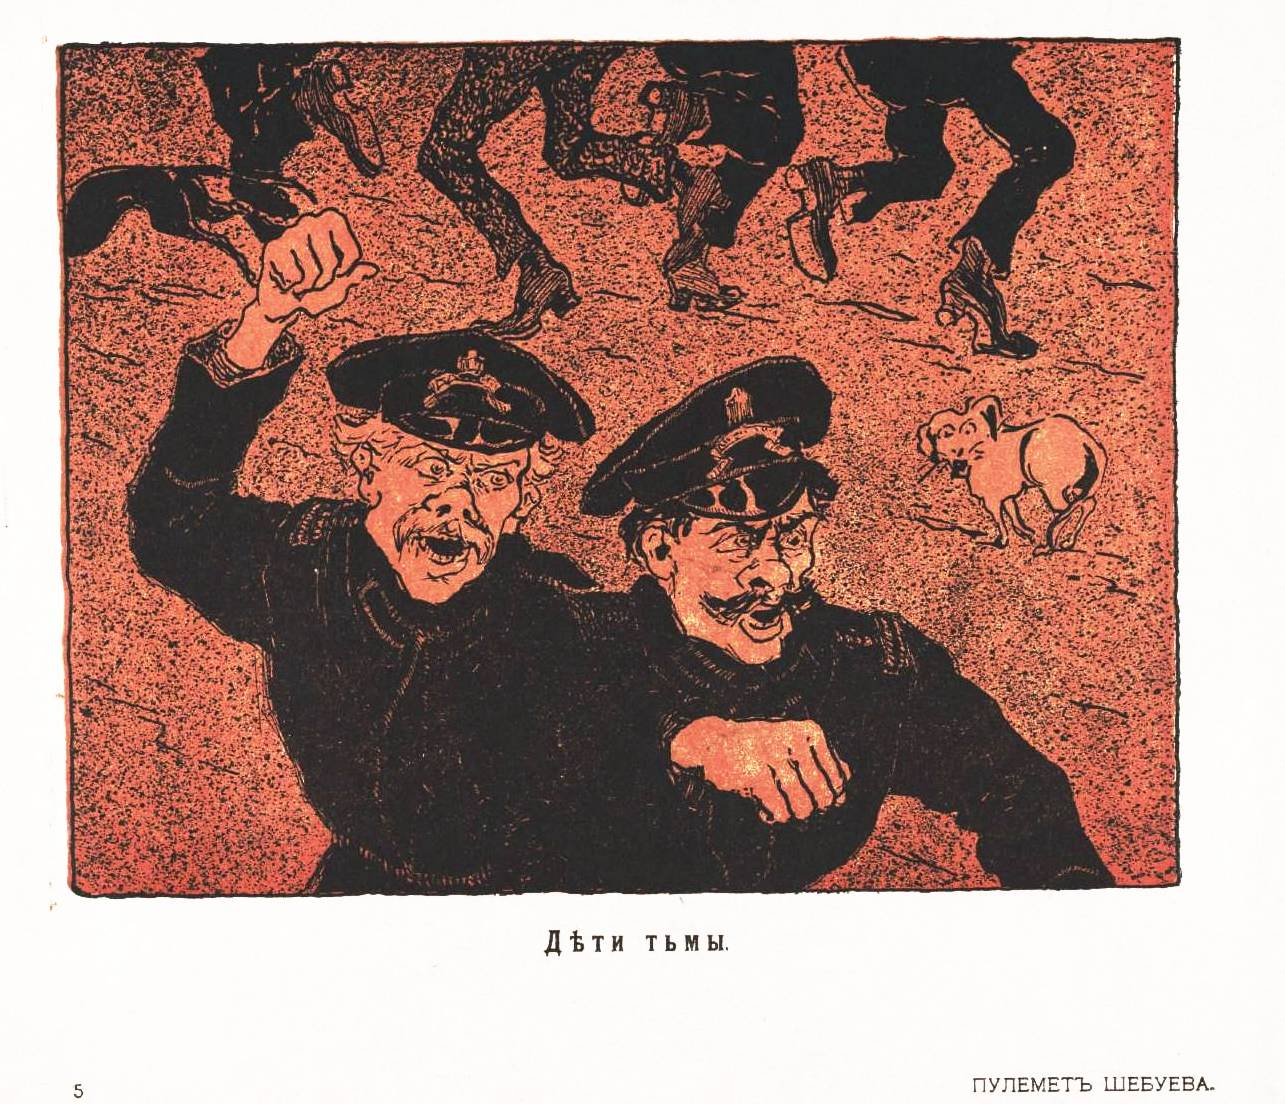 Art – Illustration – Political – Russian Graphic art of the revolution 1905  – Riot, police